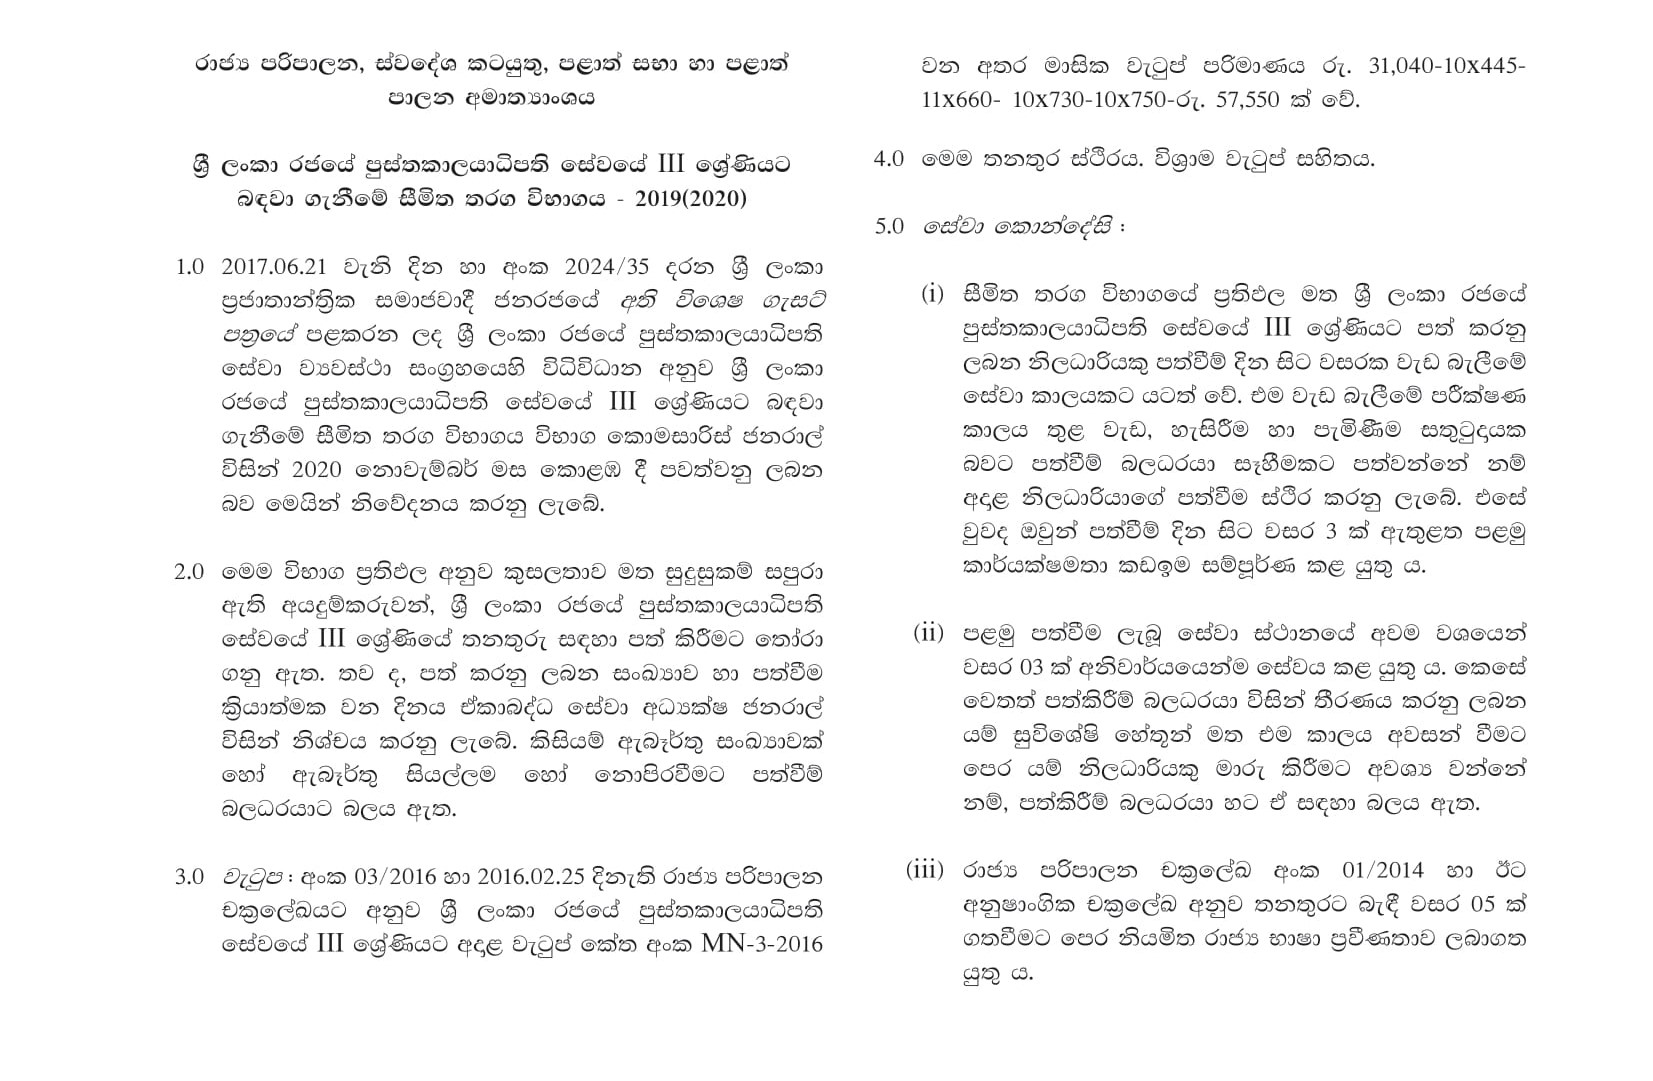 Limited Competitive Exam for Recruitment to Grade III of Sri Lanka Government Librarians' Service - 2019 (2020)